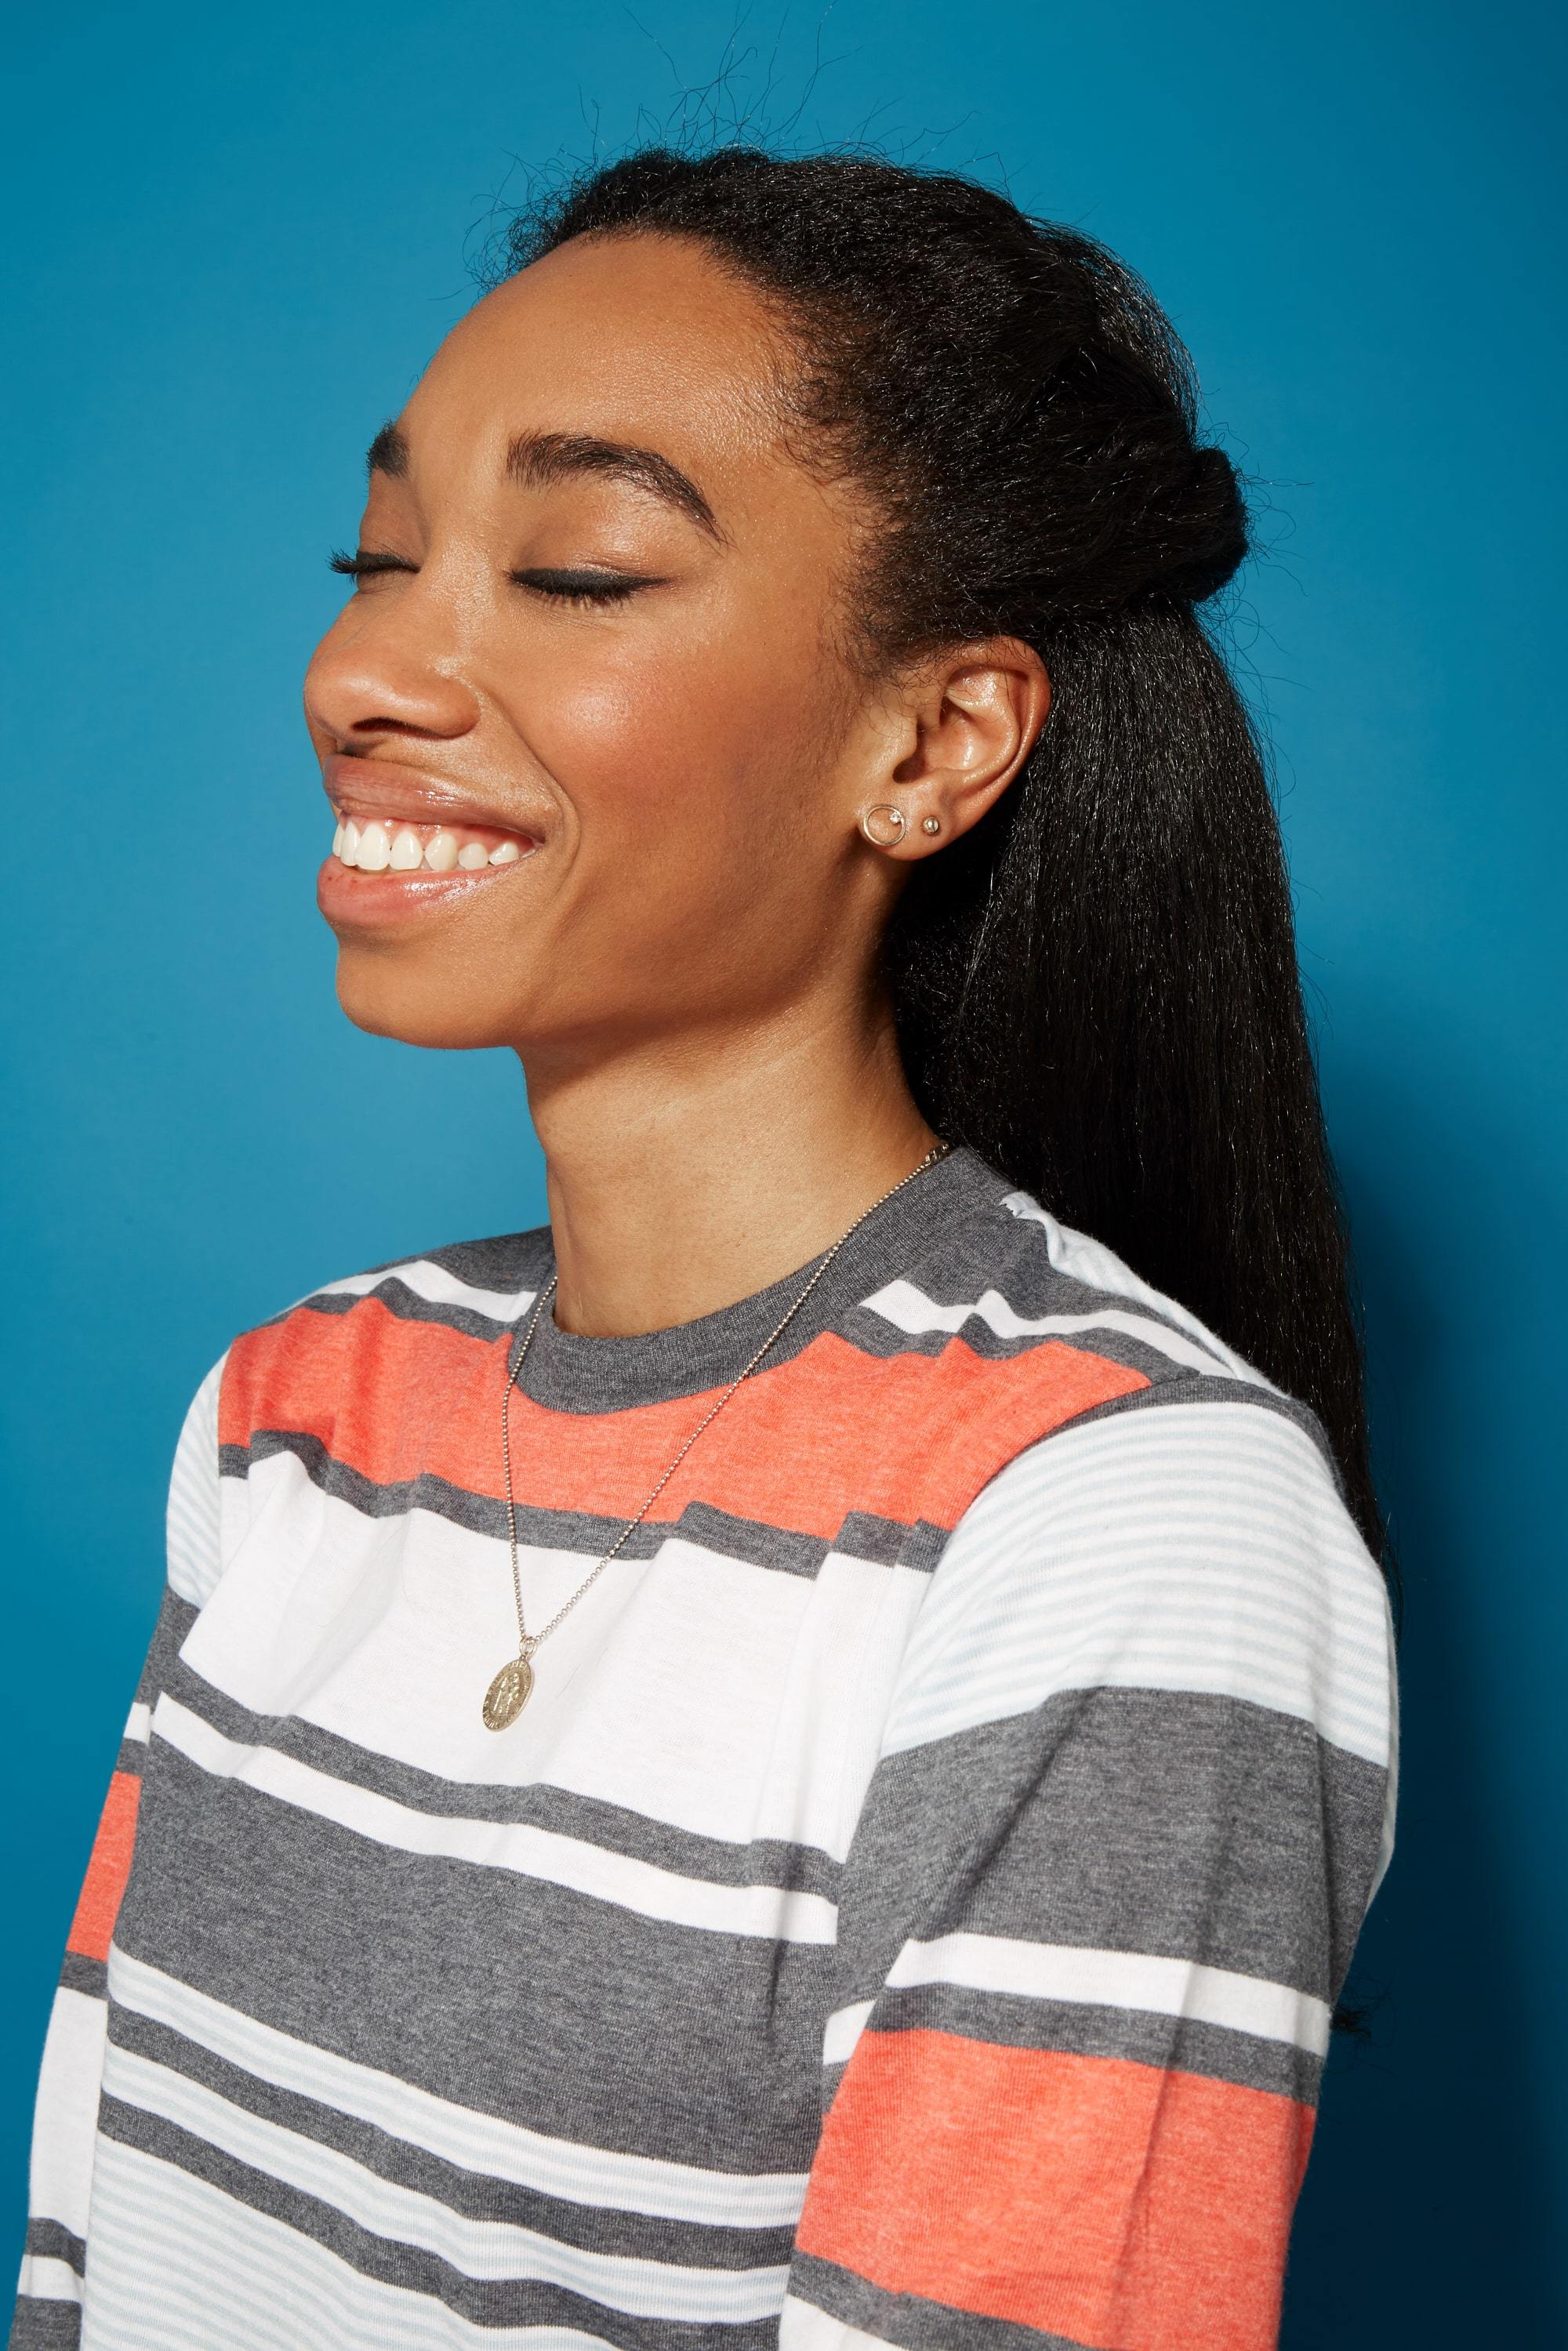 Blow out natural hair: Smiling woman with straightened natural hair in a half-up half-down hairstyle